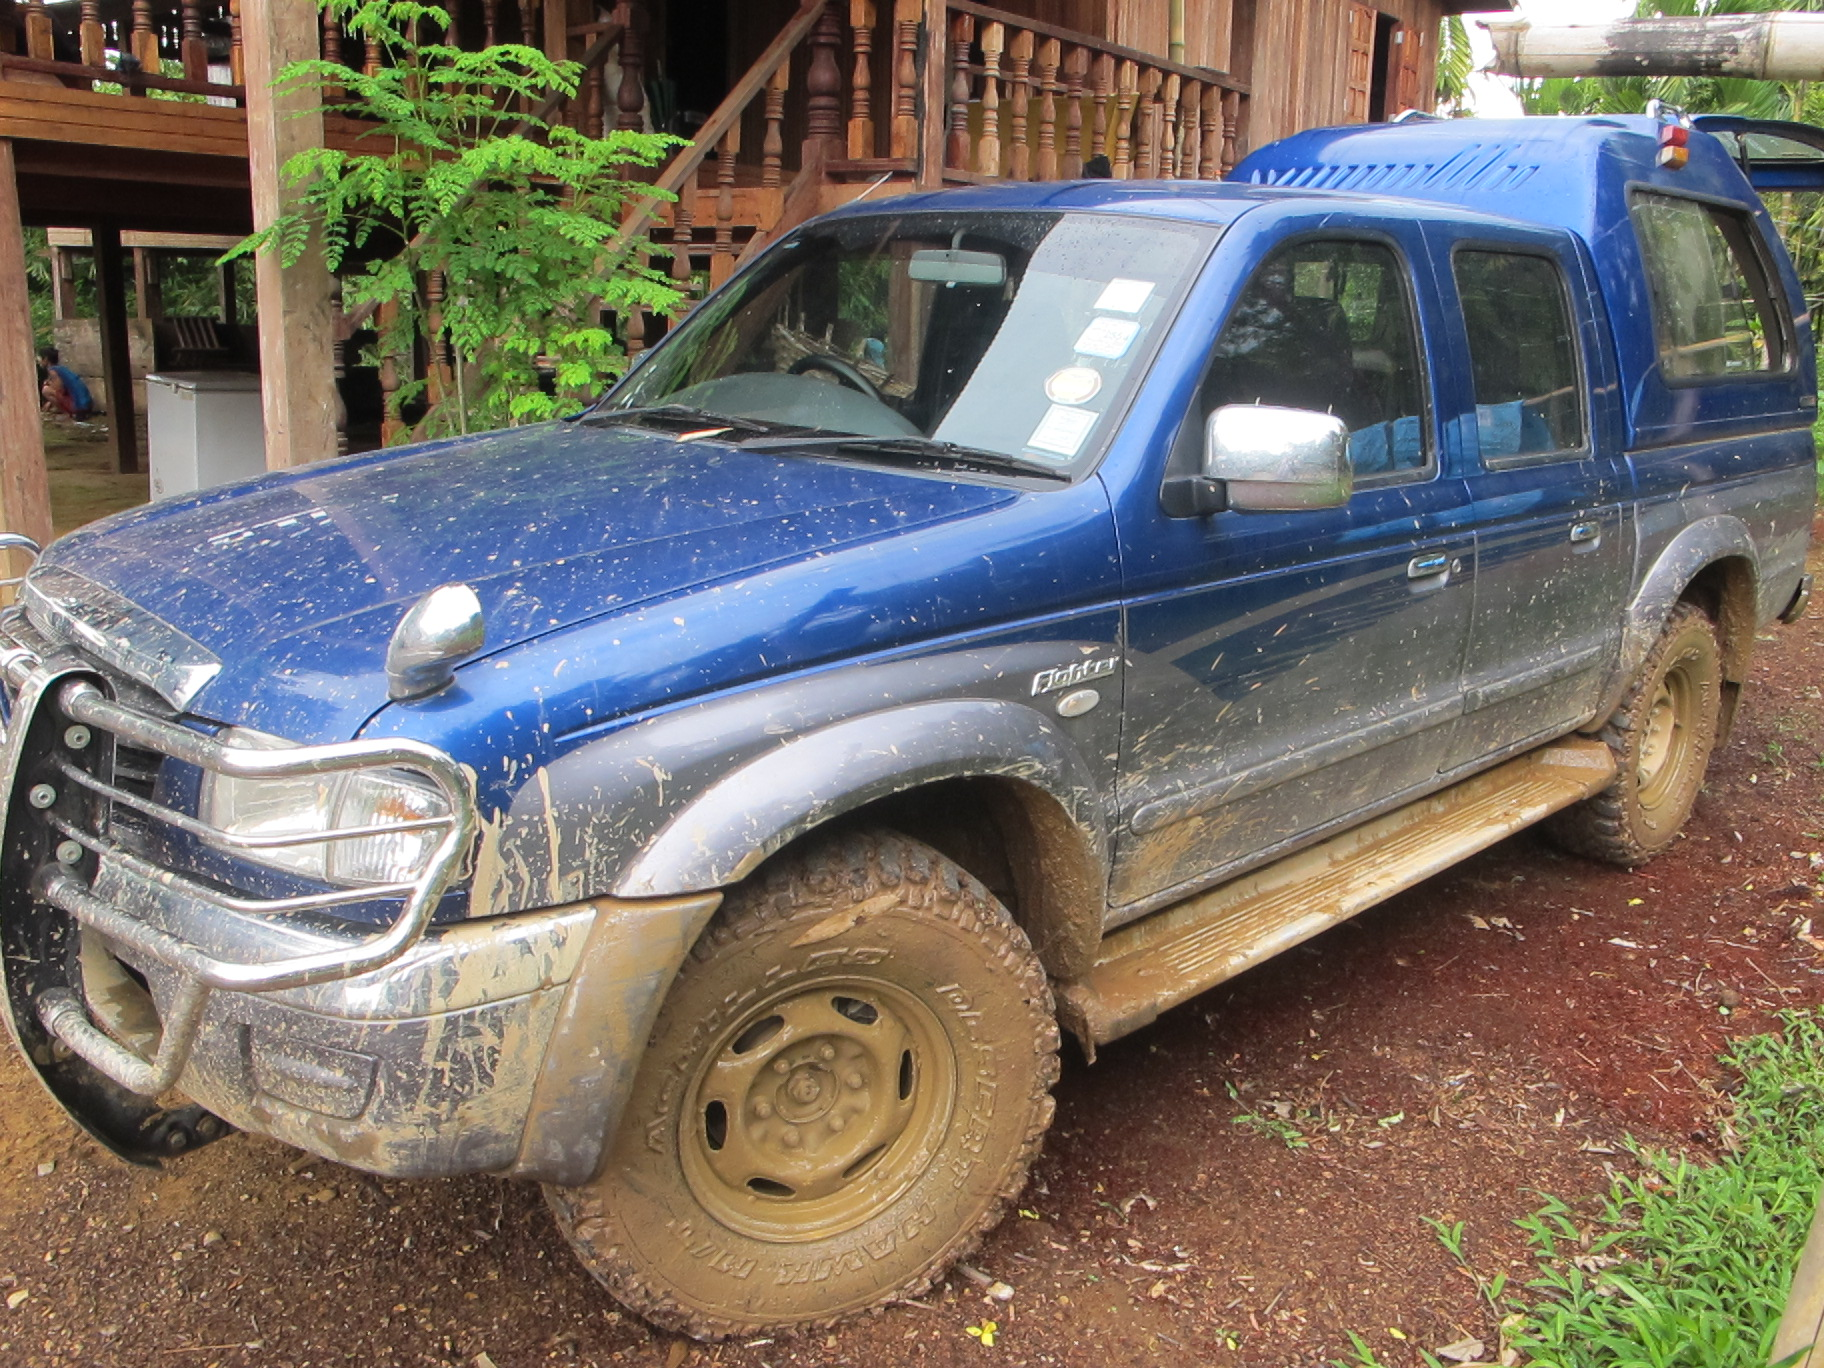 truck-in-mud-after-drive.jpg